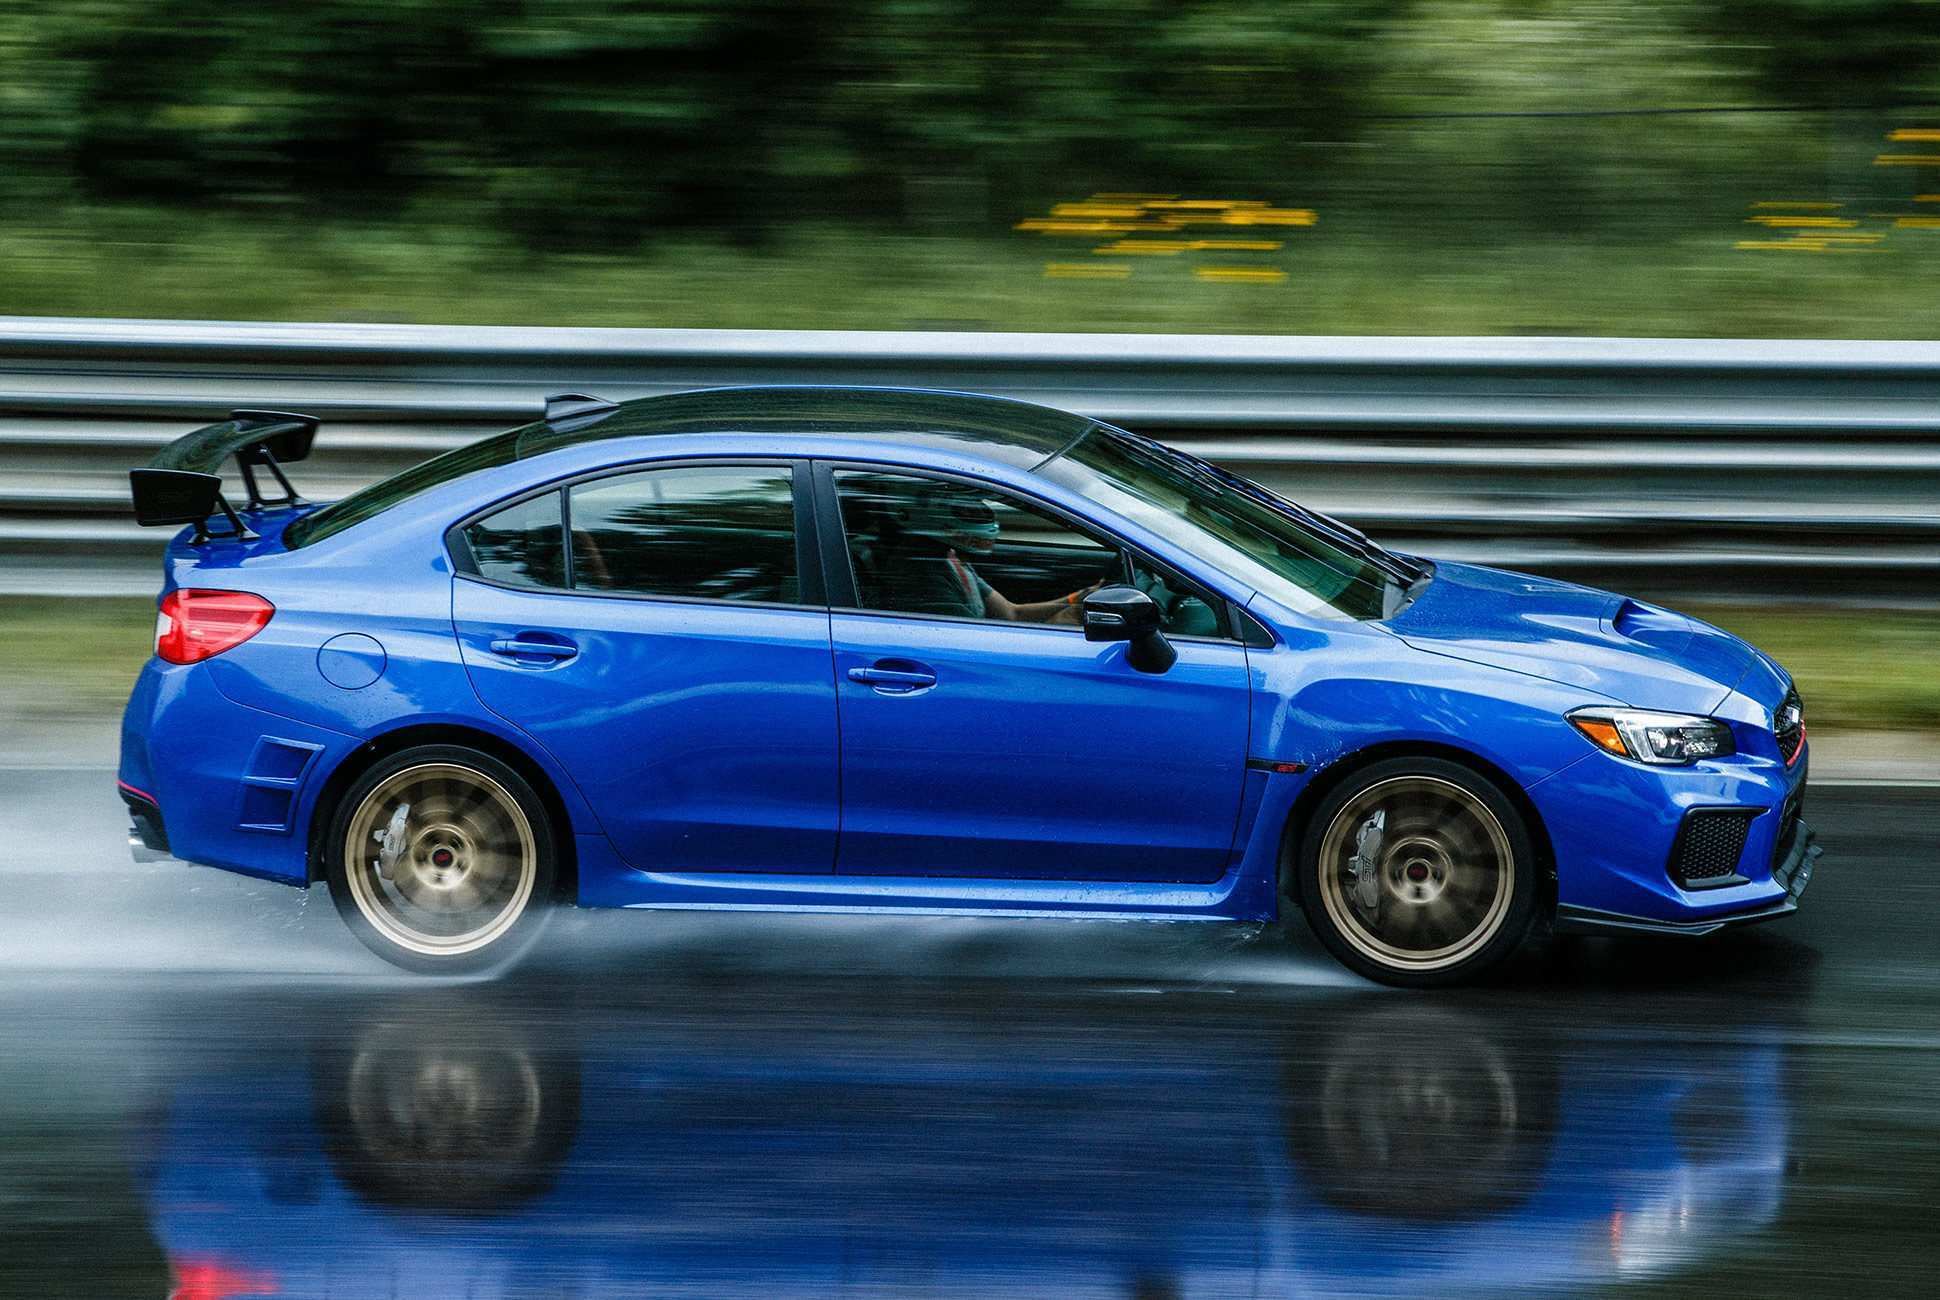 70 Best Wrx Subaru 2019 Pictures